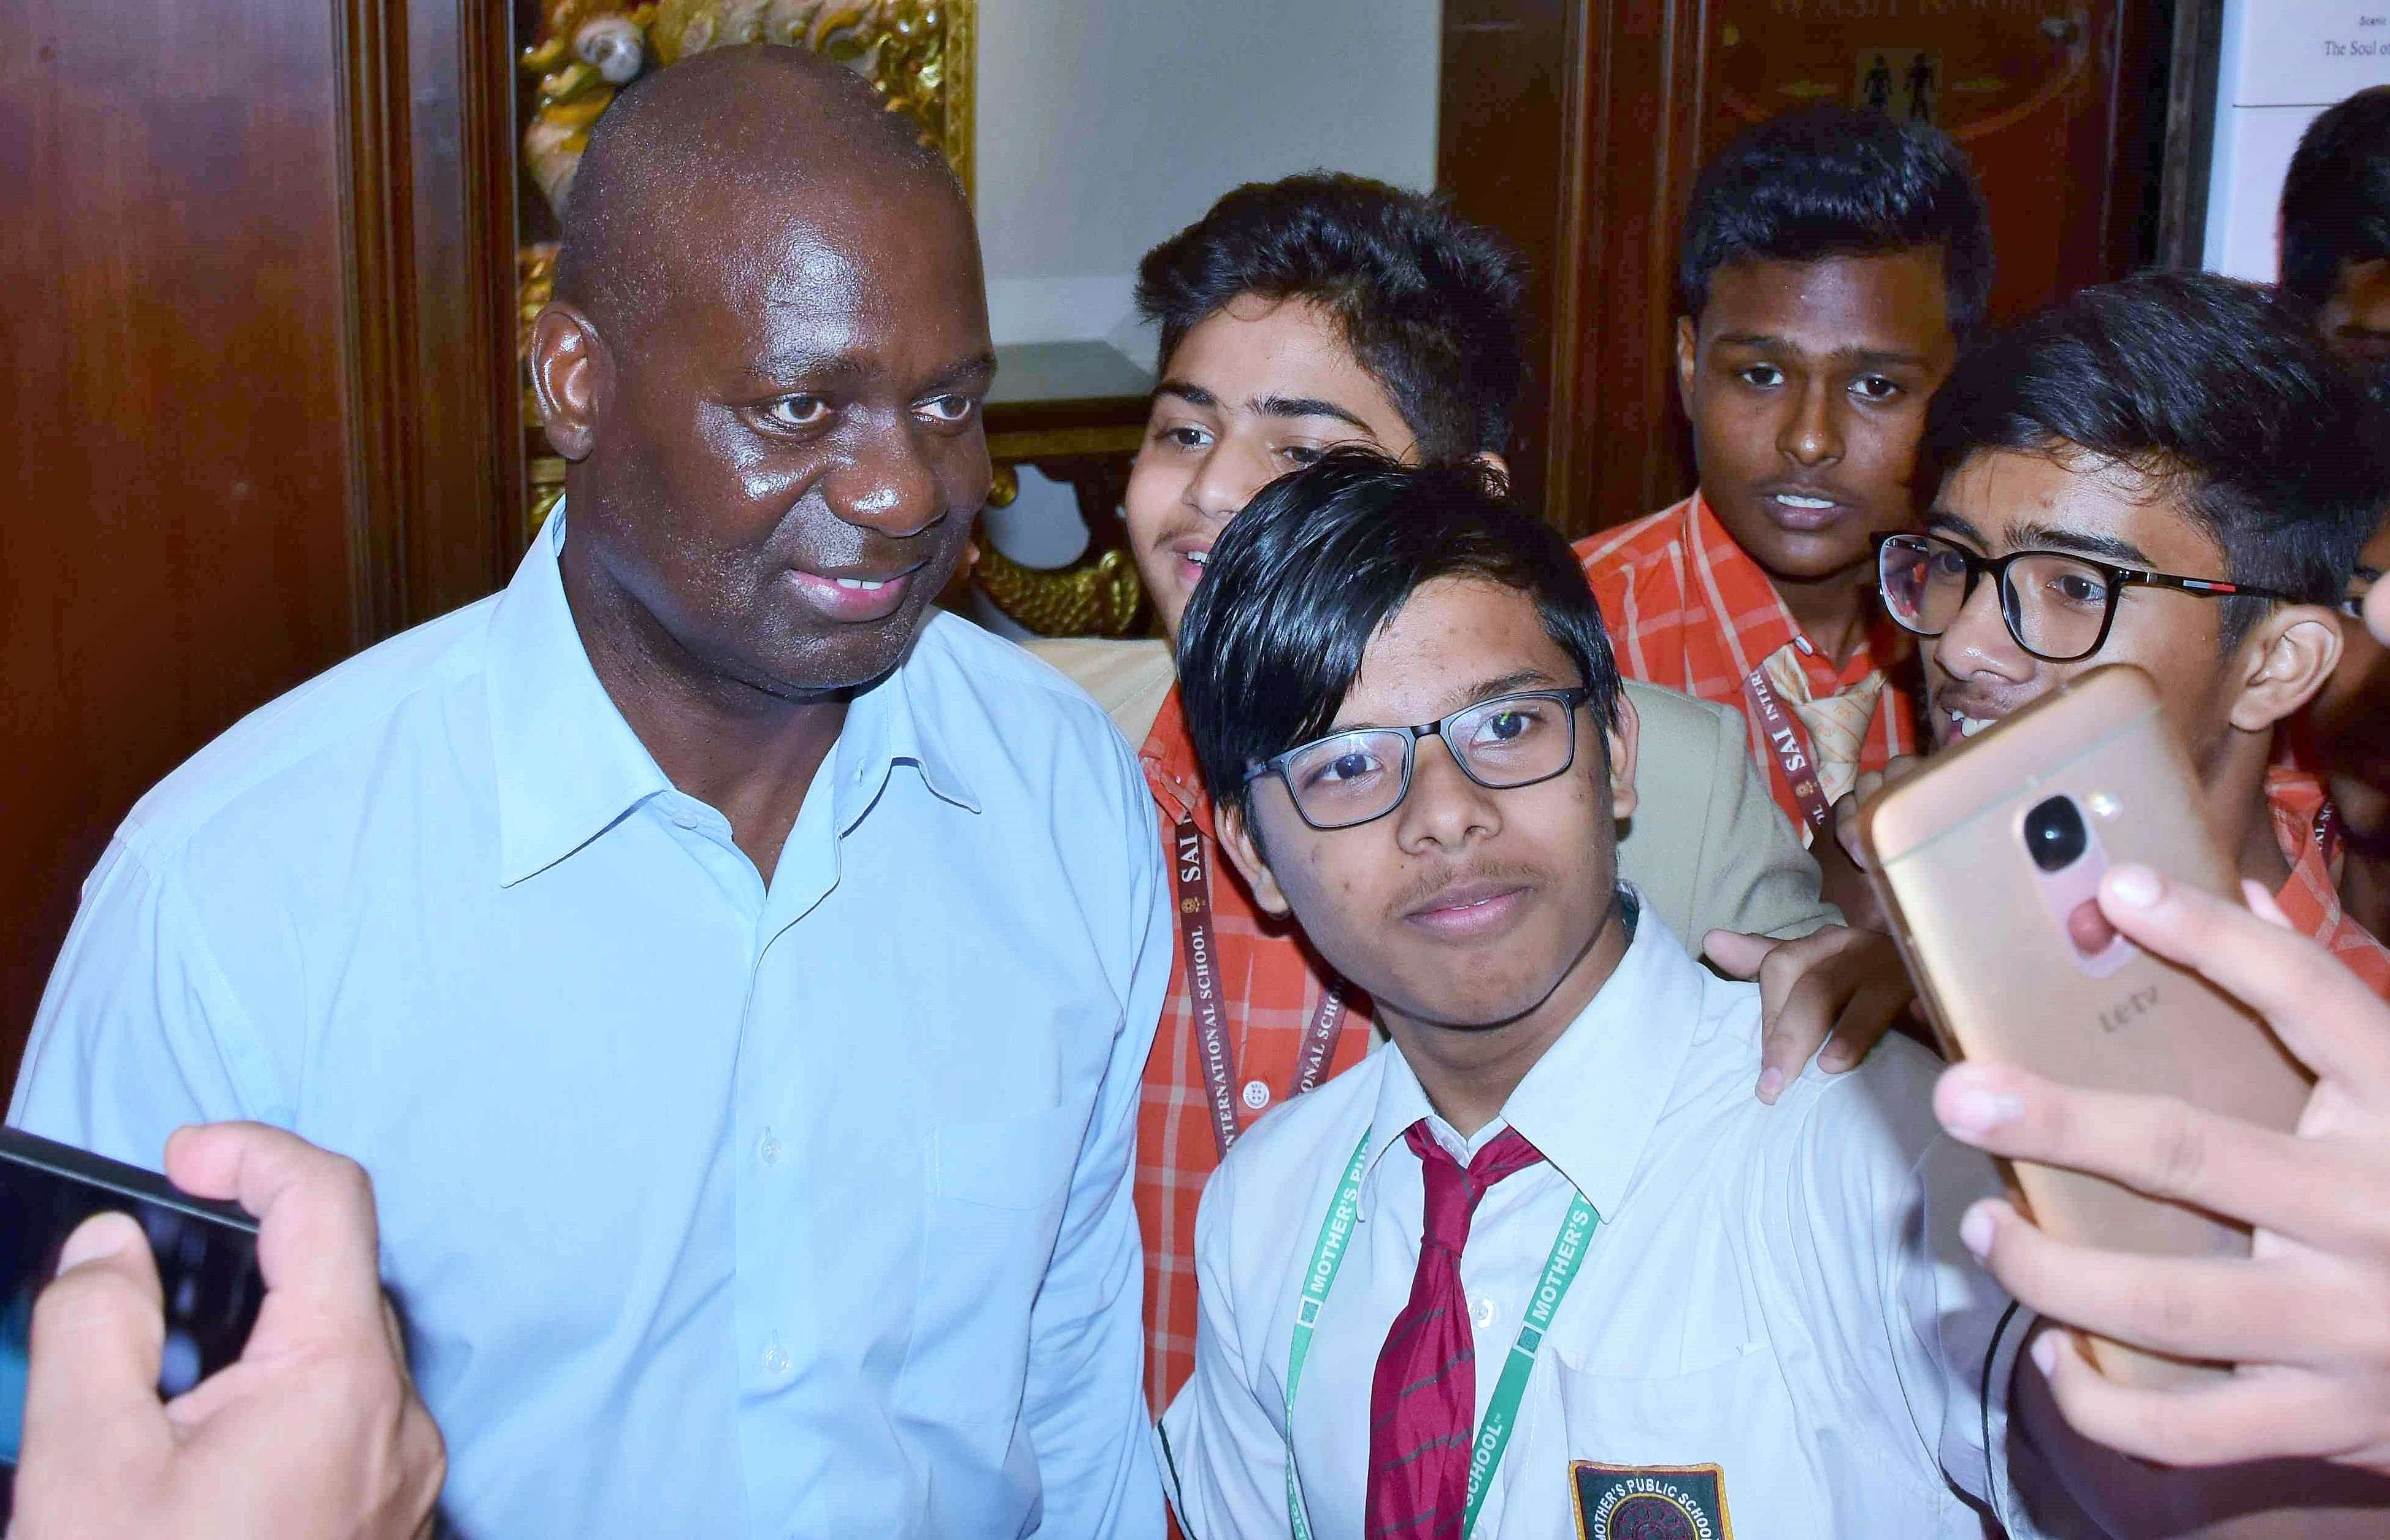 Ben Jonshon with school kids at the lit fest